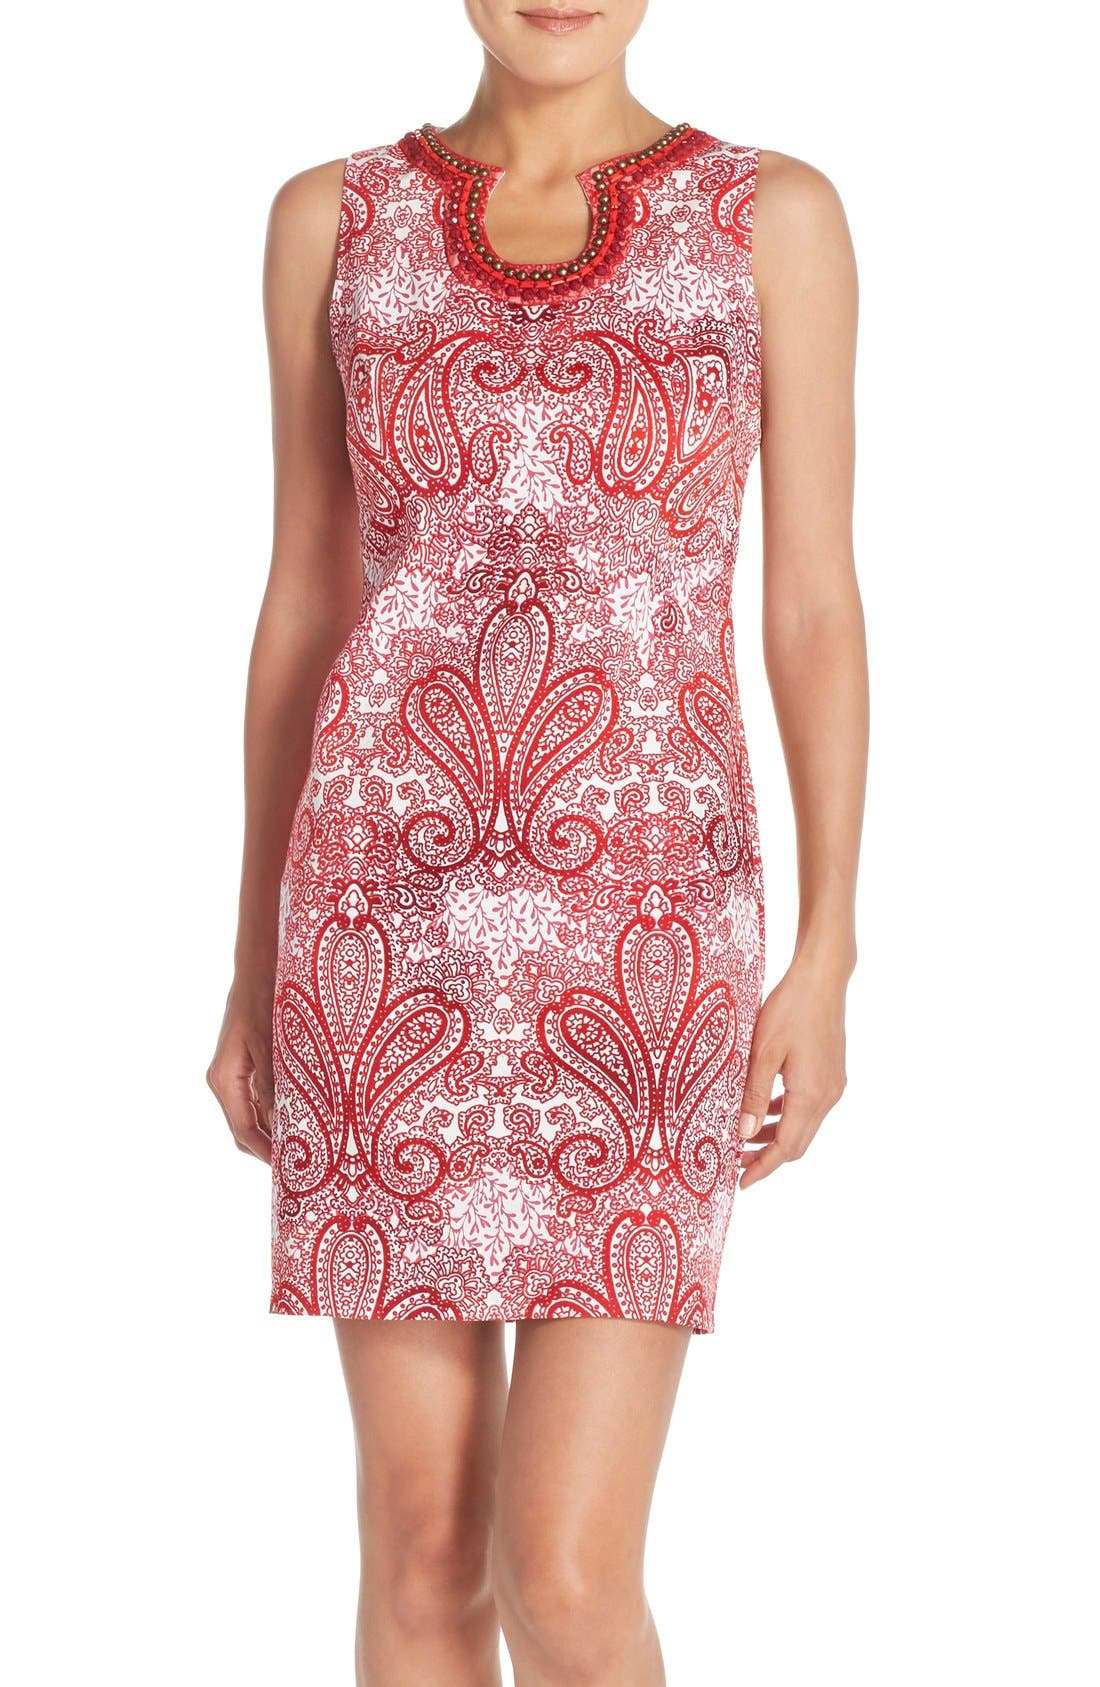 Alternate Image 1 Selected - London Times 'Regal Ombré' Embellished Paisley Print Sleeveless Shift Dress